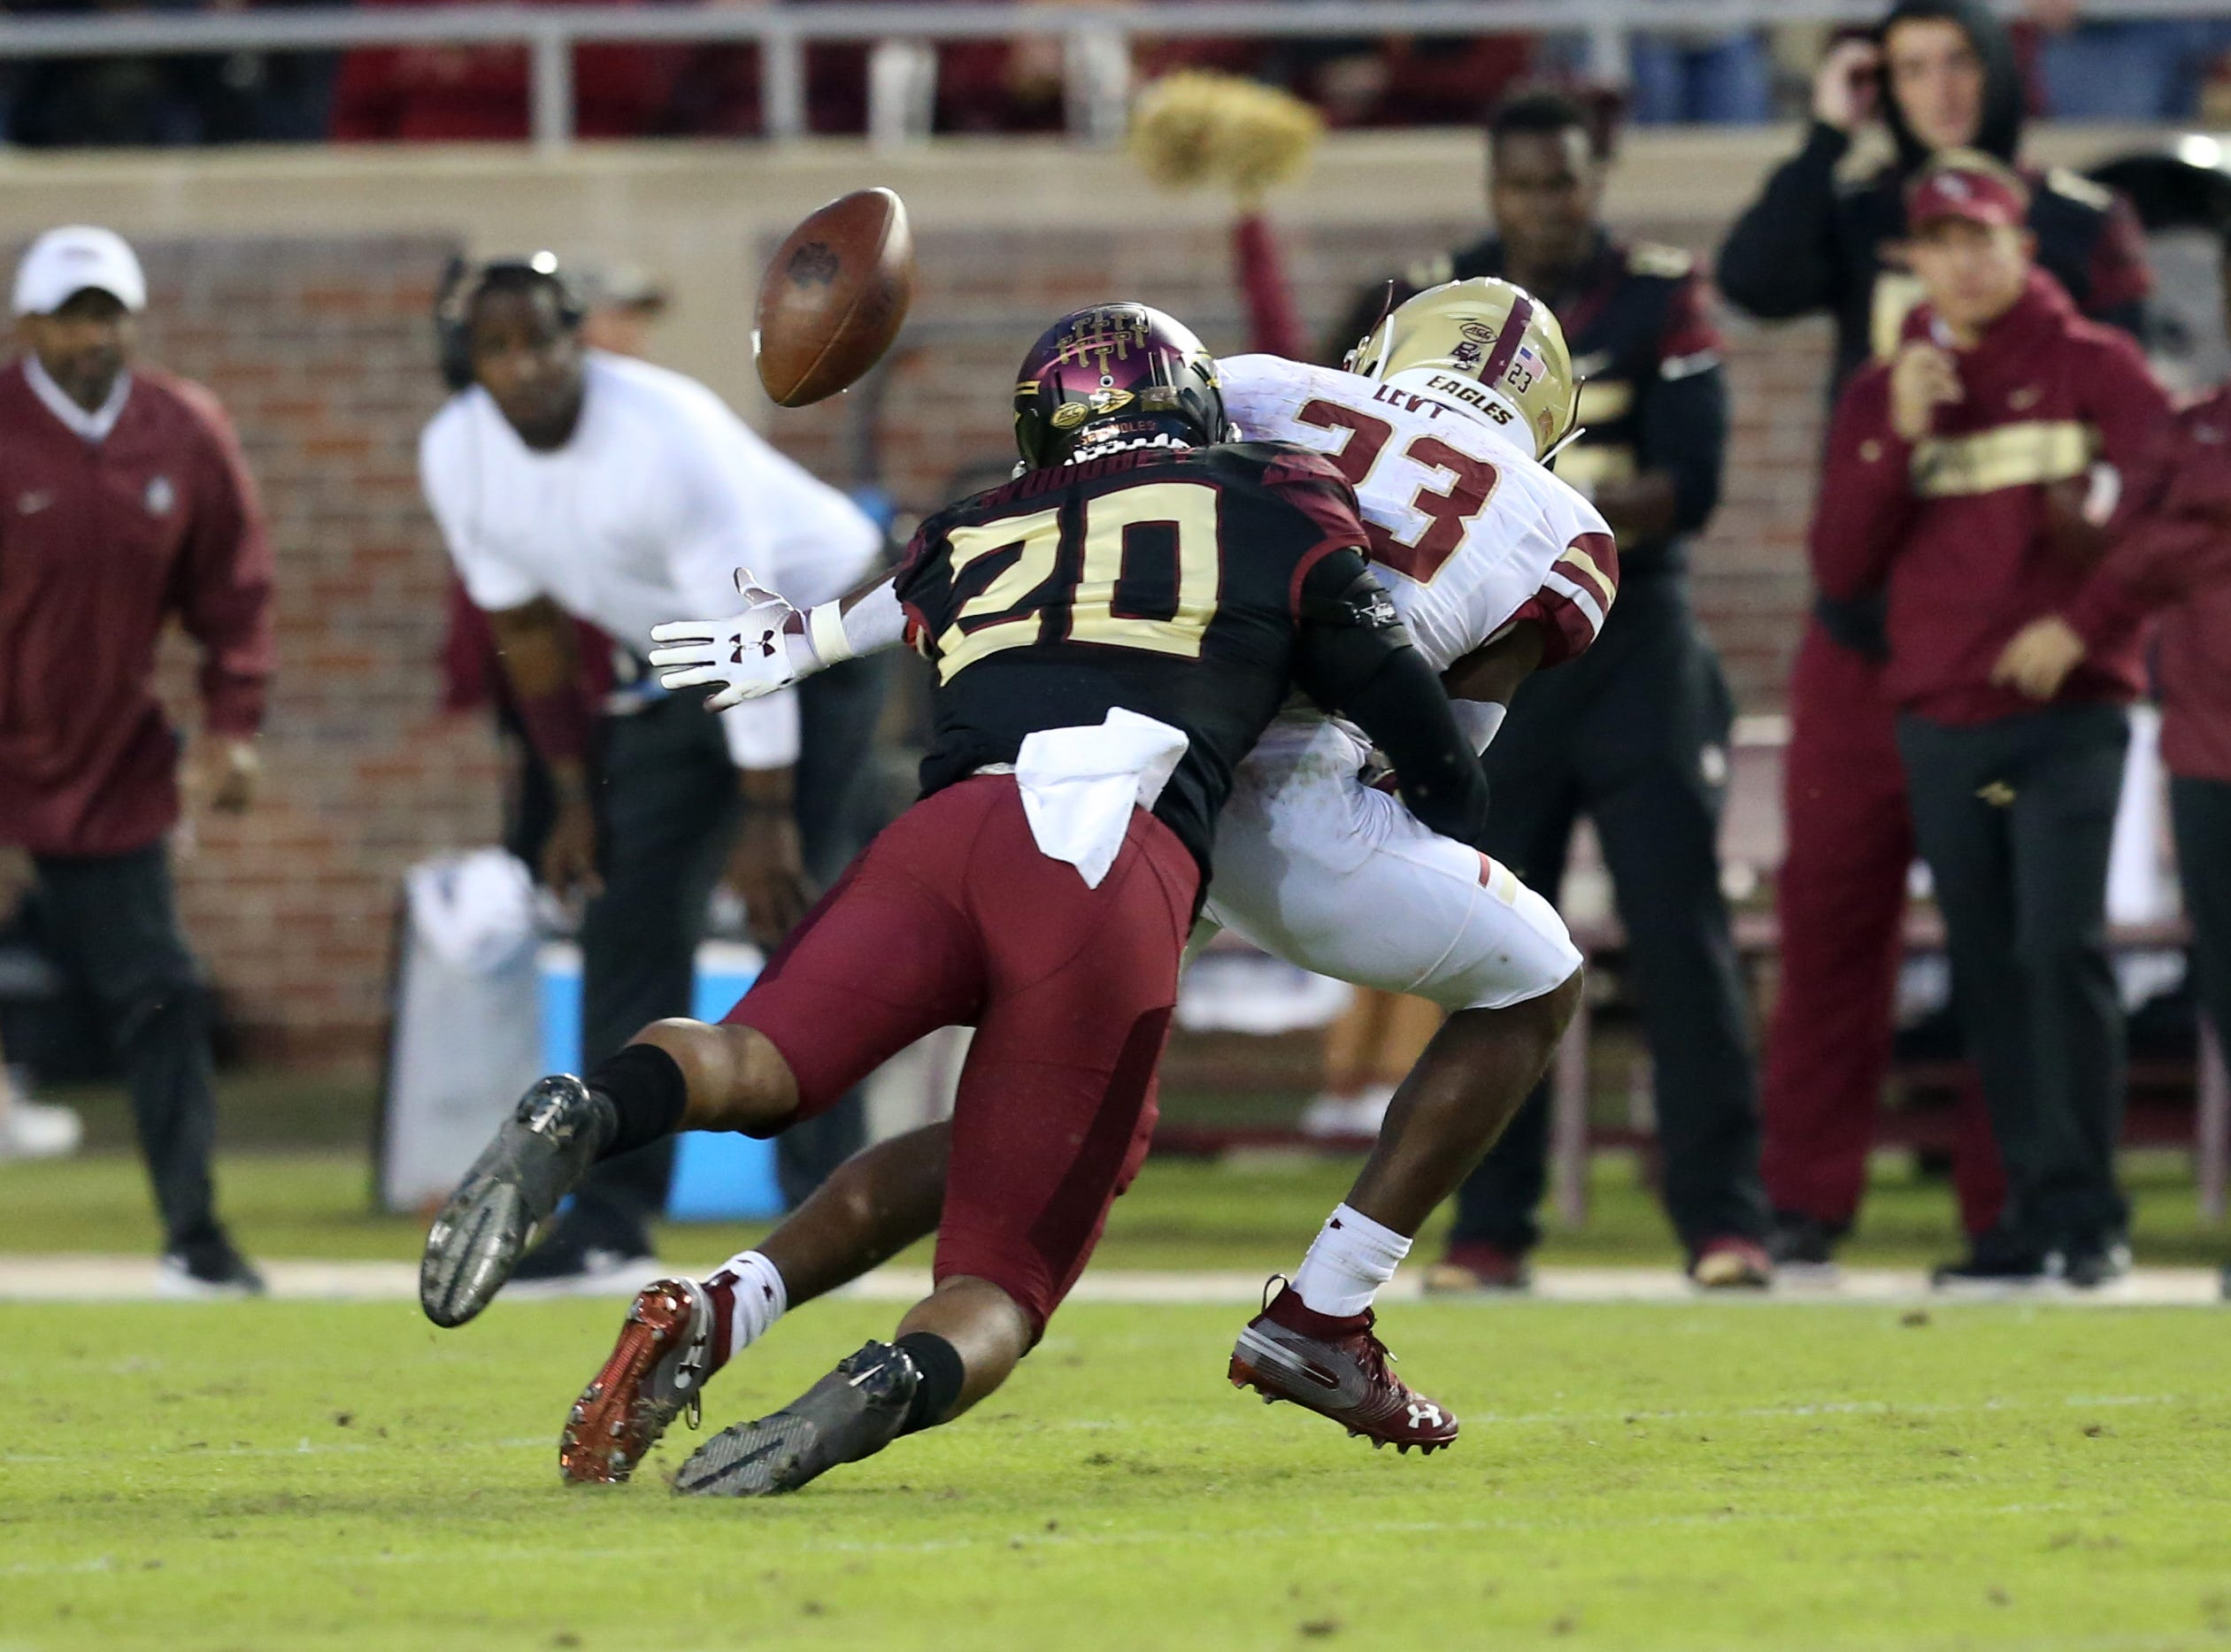 Florida State Seminoles defensive back Jaiden Woodbey (20) tackles Boston College Eagles linebacker Curt Bletzer (33) as the Florida State Seminoles face off against the Boston College Eagles at Doak S. Campbell Stadium, Saturday, Nov. 17, 2018.